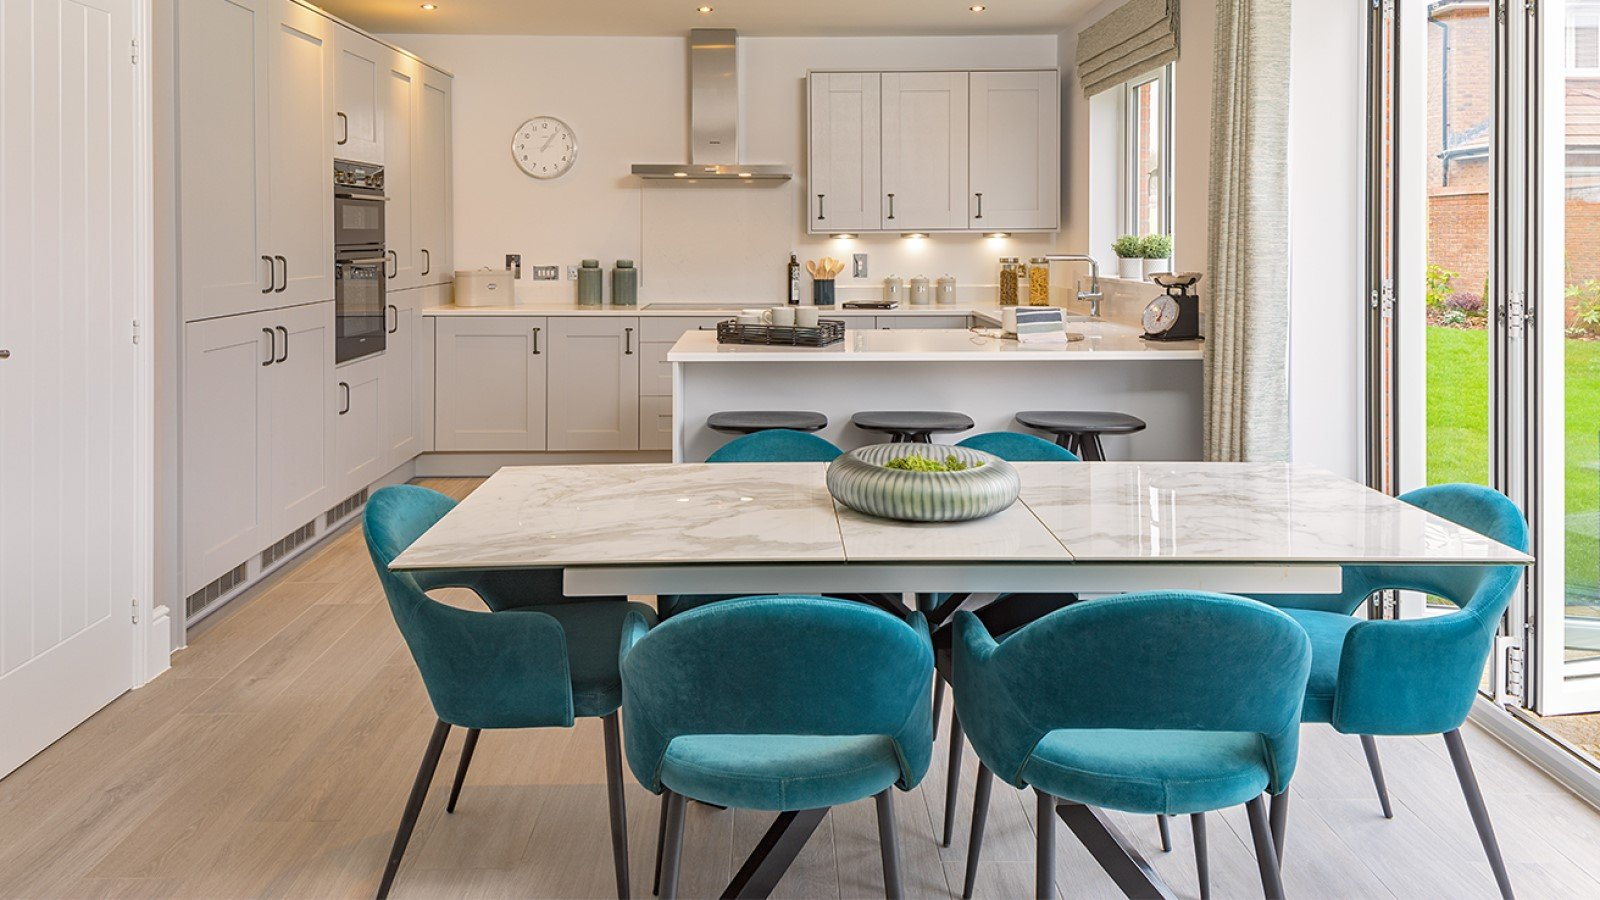 100 new Redrow homes coming soon in Oxford